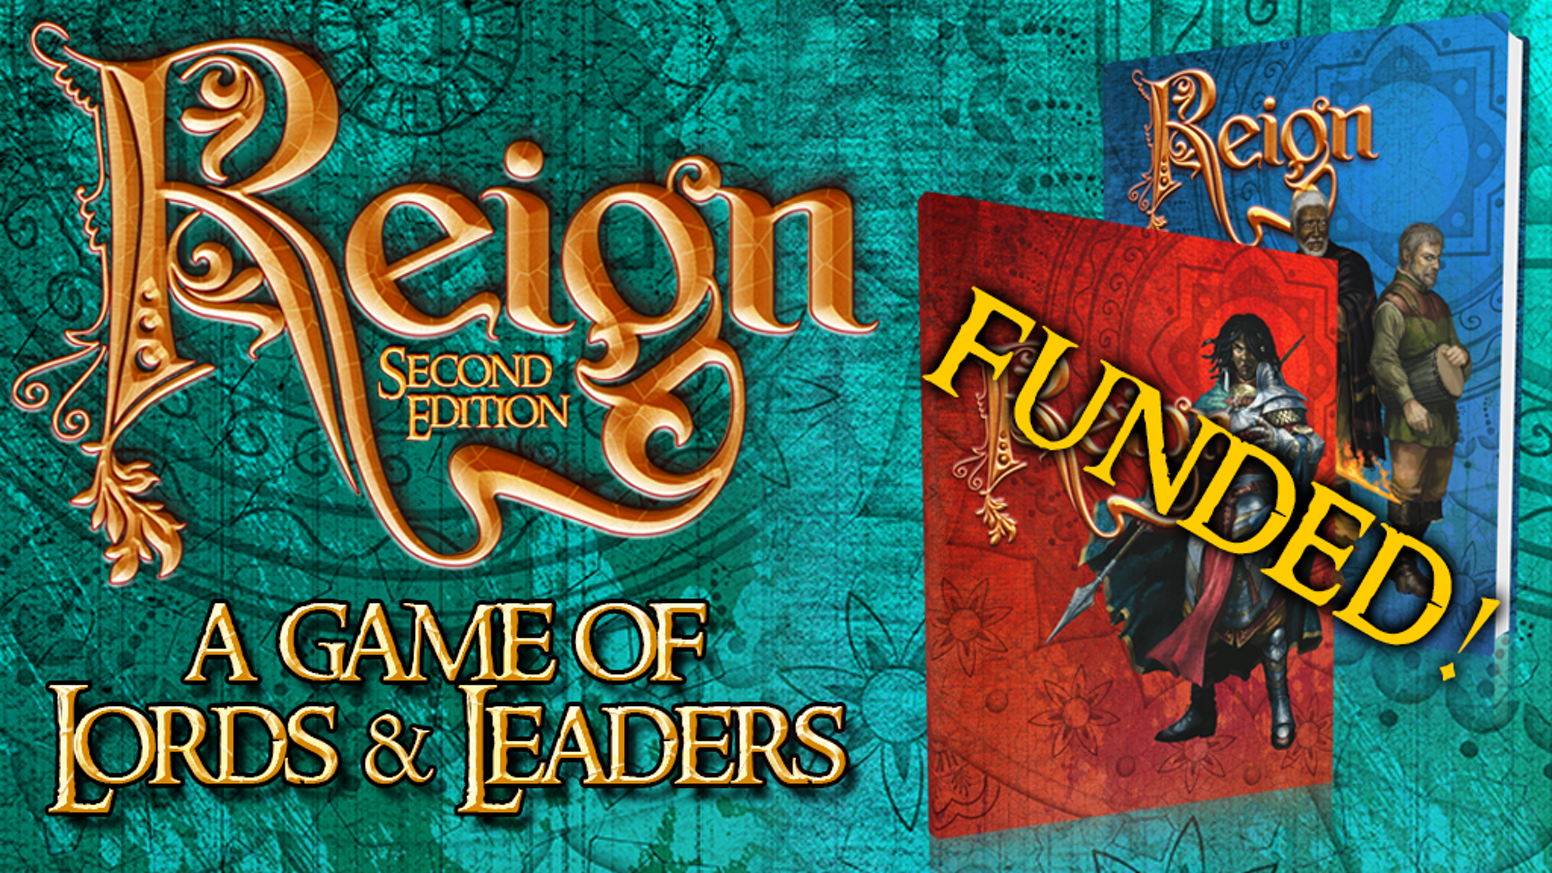 The second edition of Greg Stolze's roleplaying game of lords and leaders, powered by the One Roll Engine.